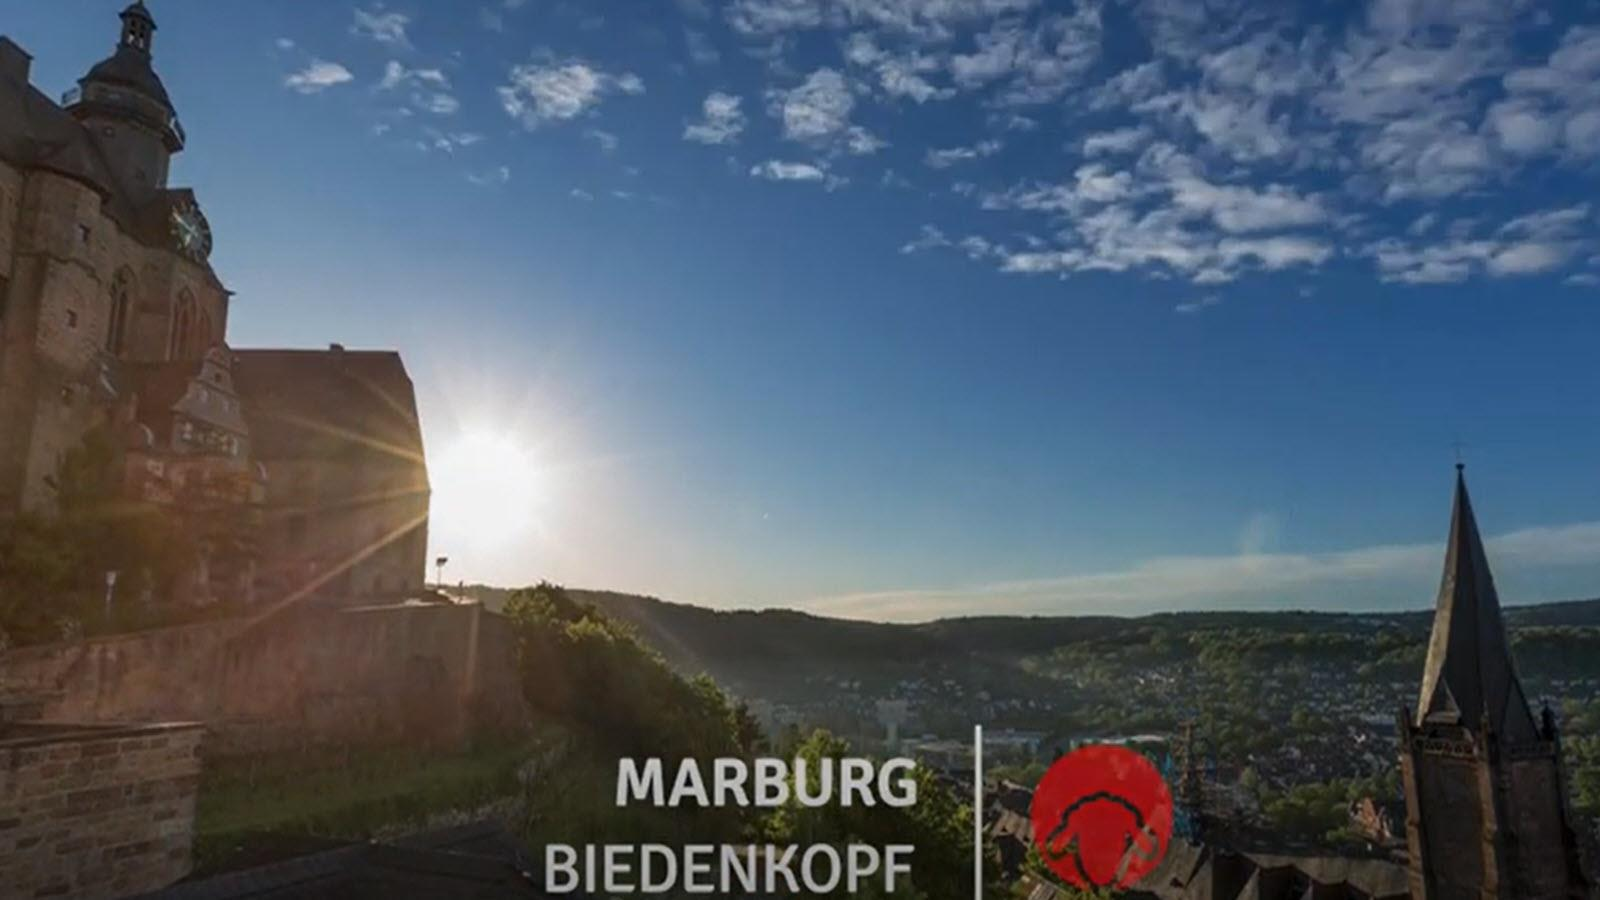 The view from Marburg, Germany, featuring mountains and medieval architecture